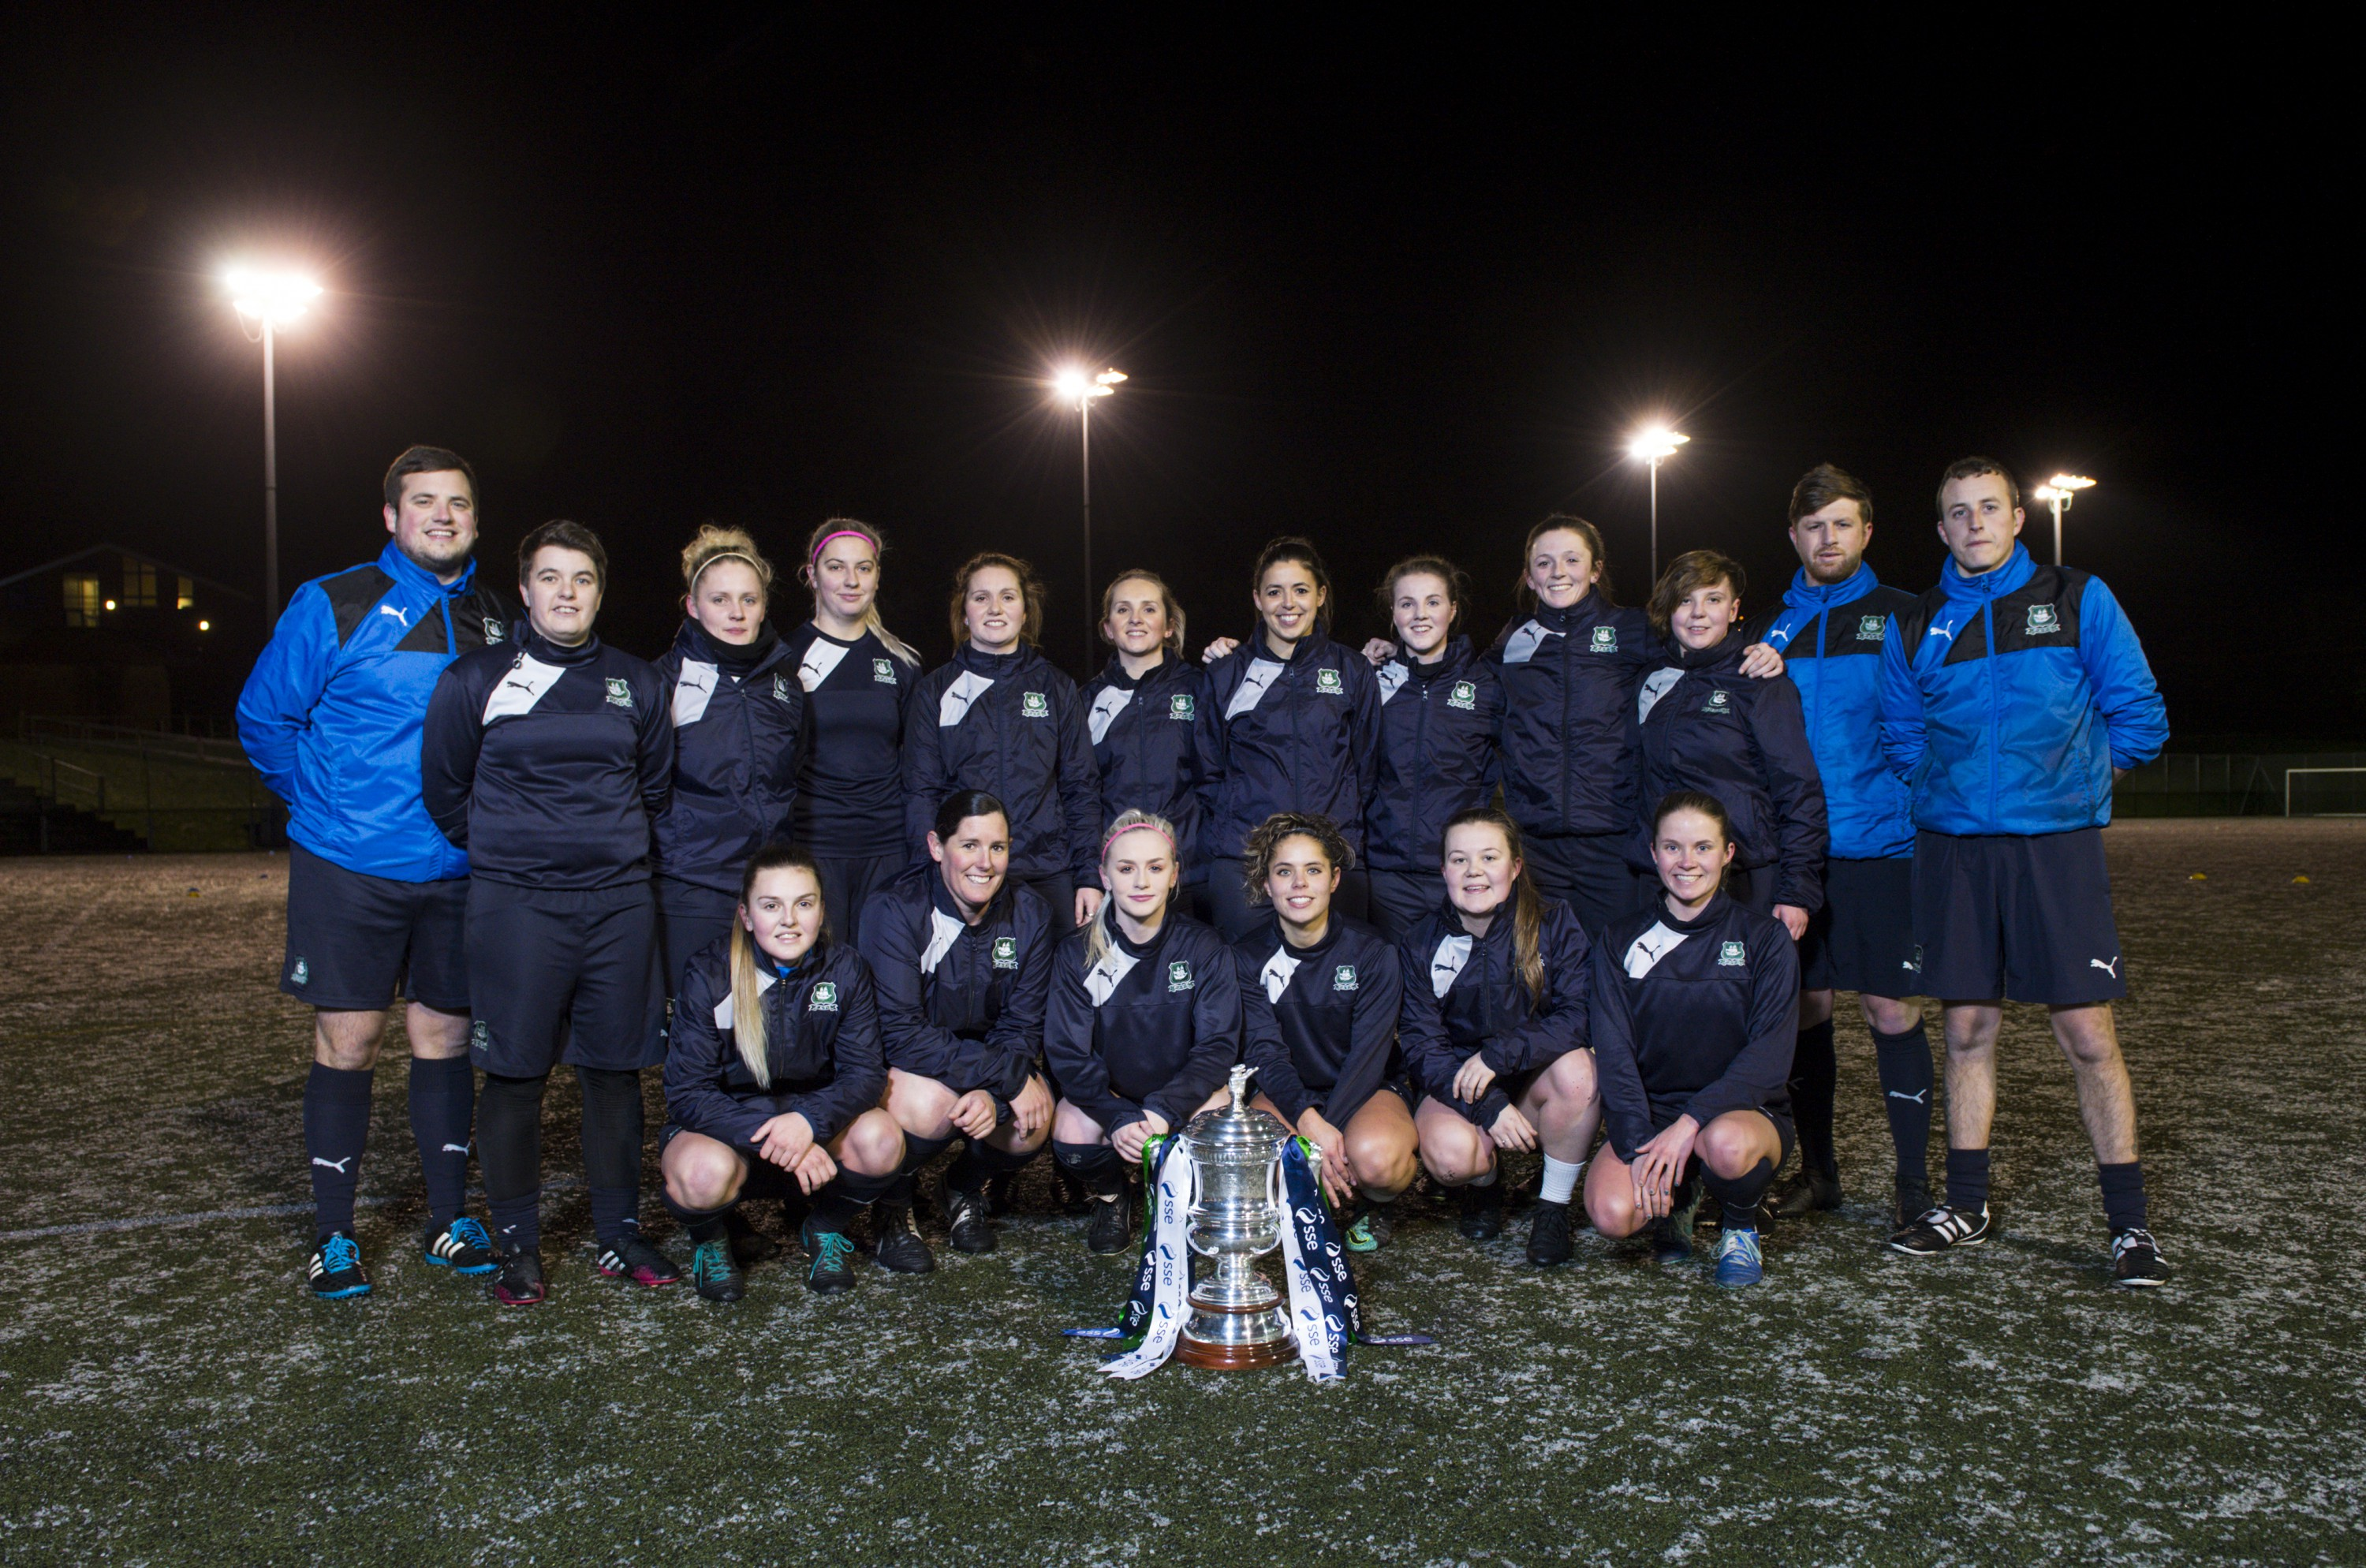 The SSE Women's FA Cup Final will take place at Wembley Stadium connected by EE on Saturday 5 May, 2018. Kids go free and tickets available on www.thefa.com/tickets